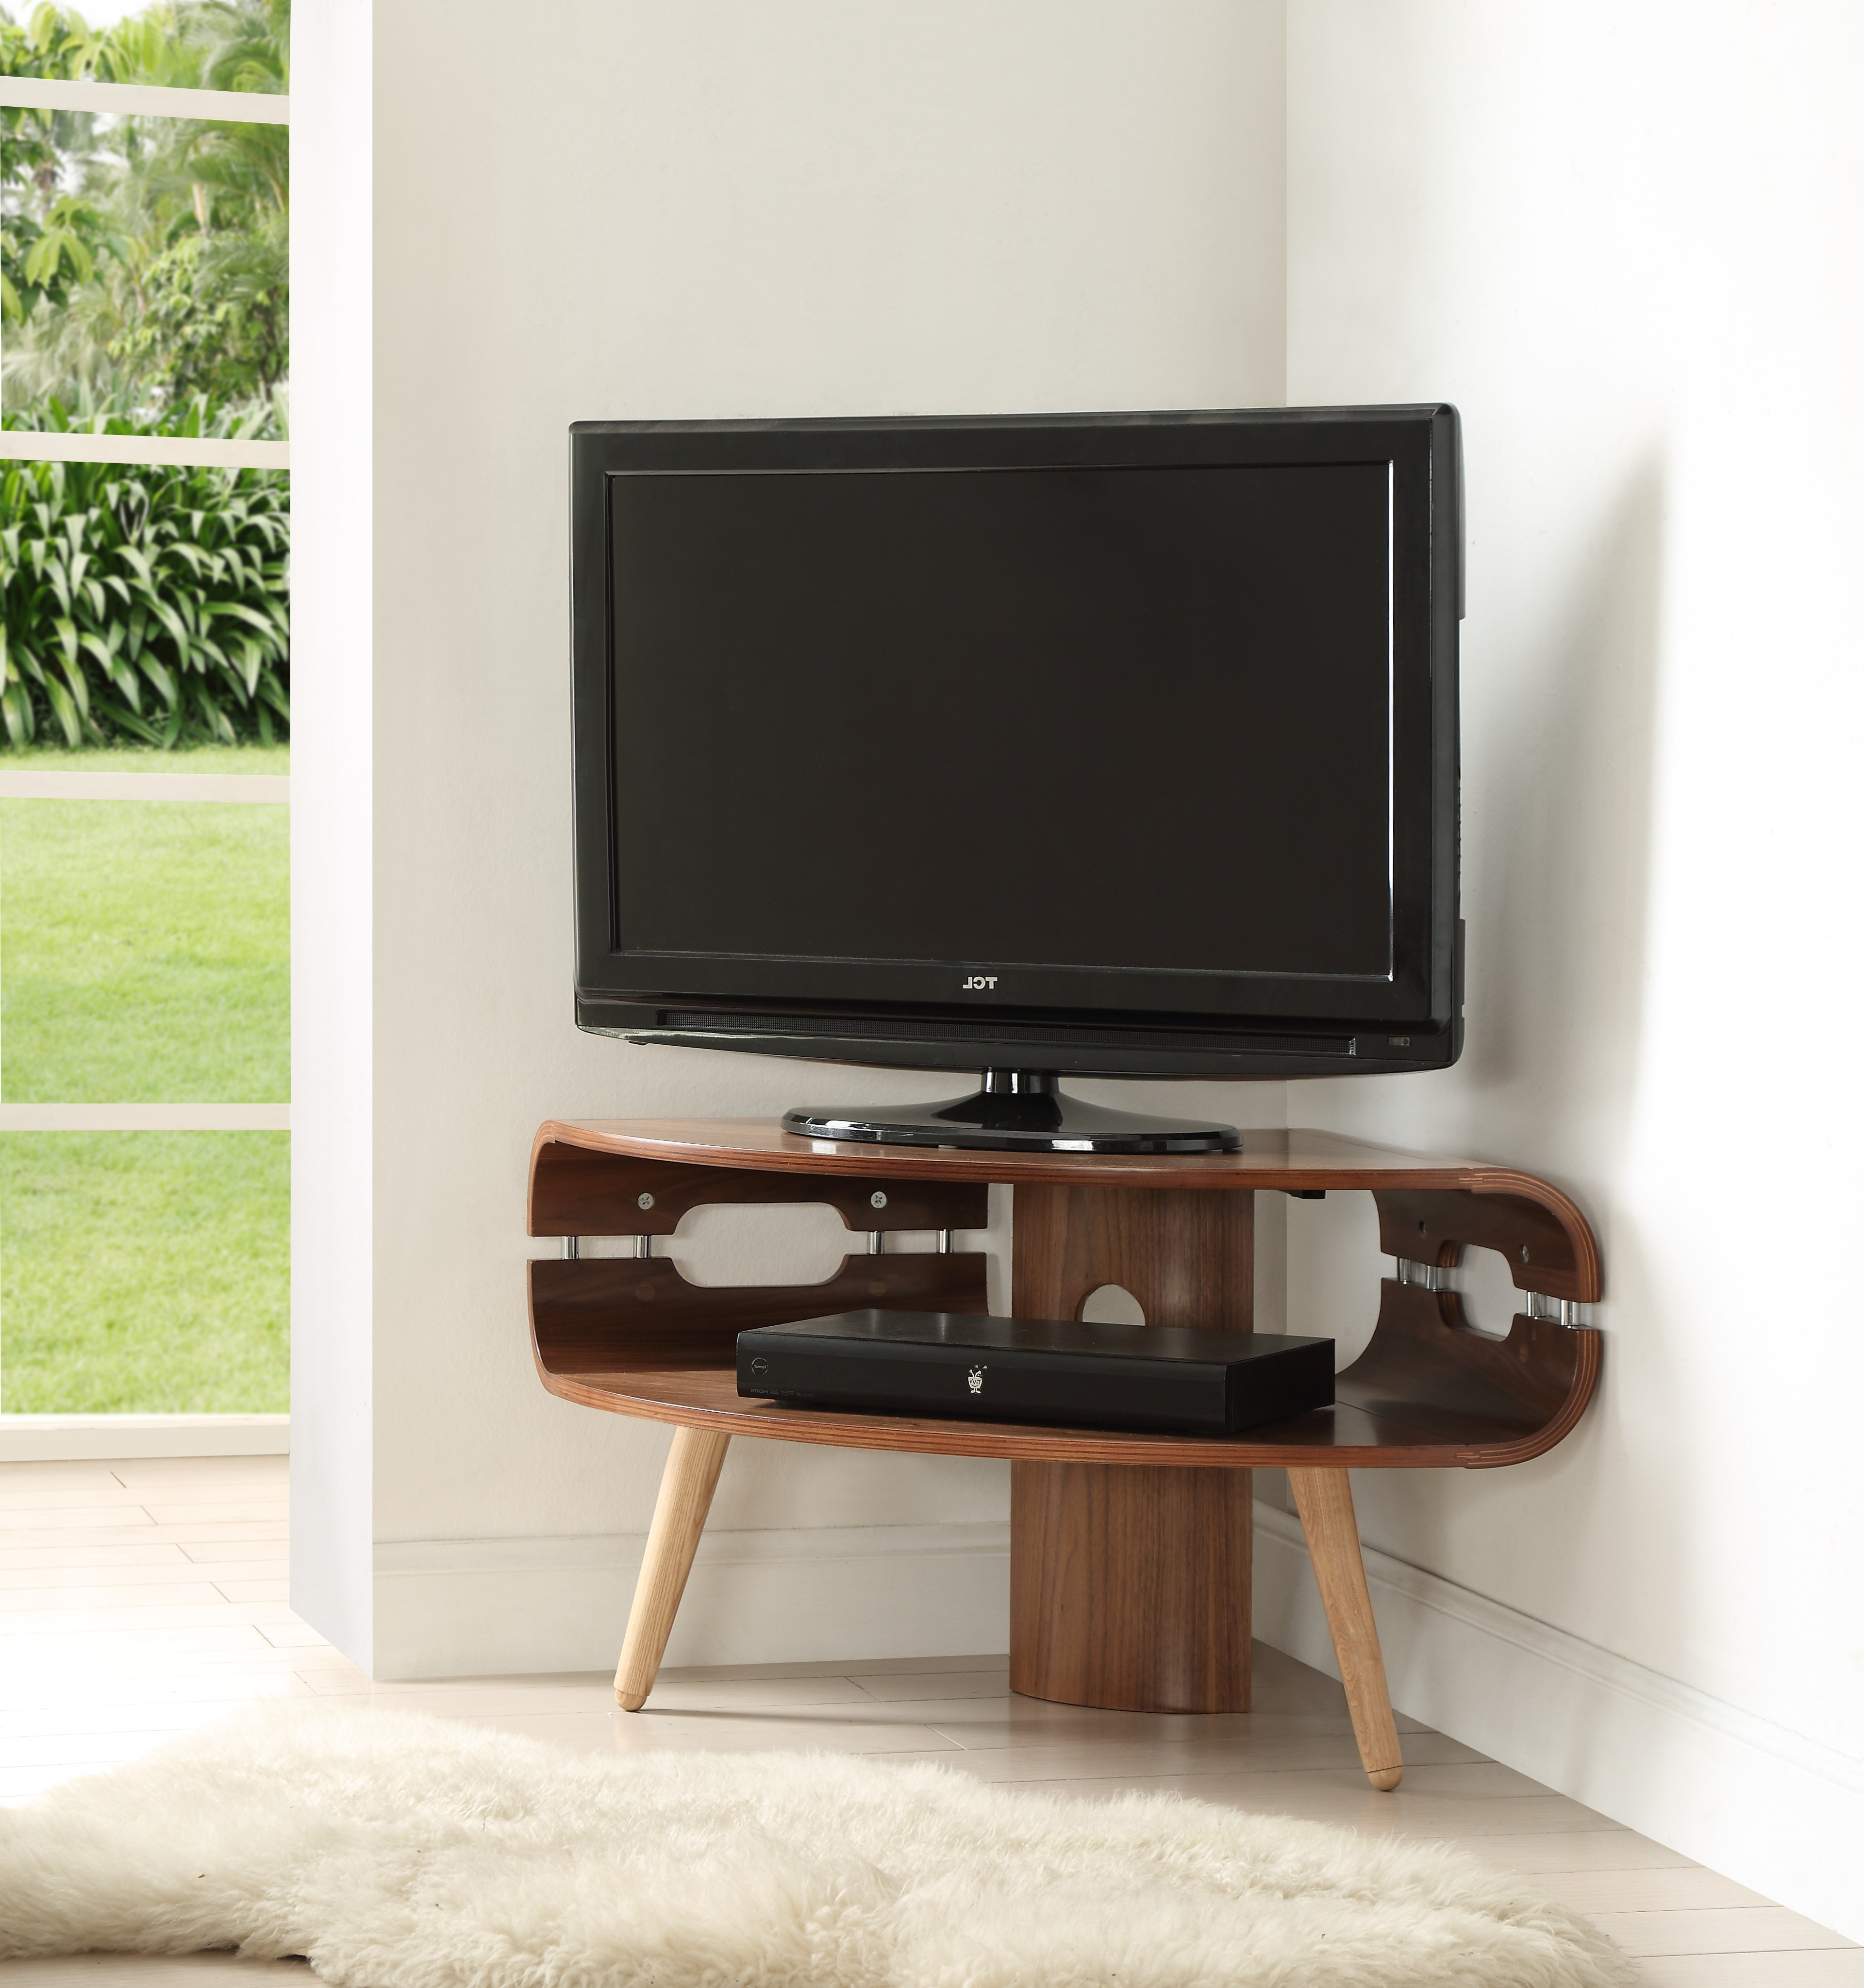 Oak Tv Stand Walmart Solid Wood Stands For Flat Screens Light Pertaining To Best And Newest Triangular Tv Stands (View 7 of 20)